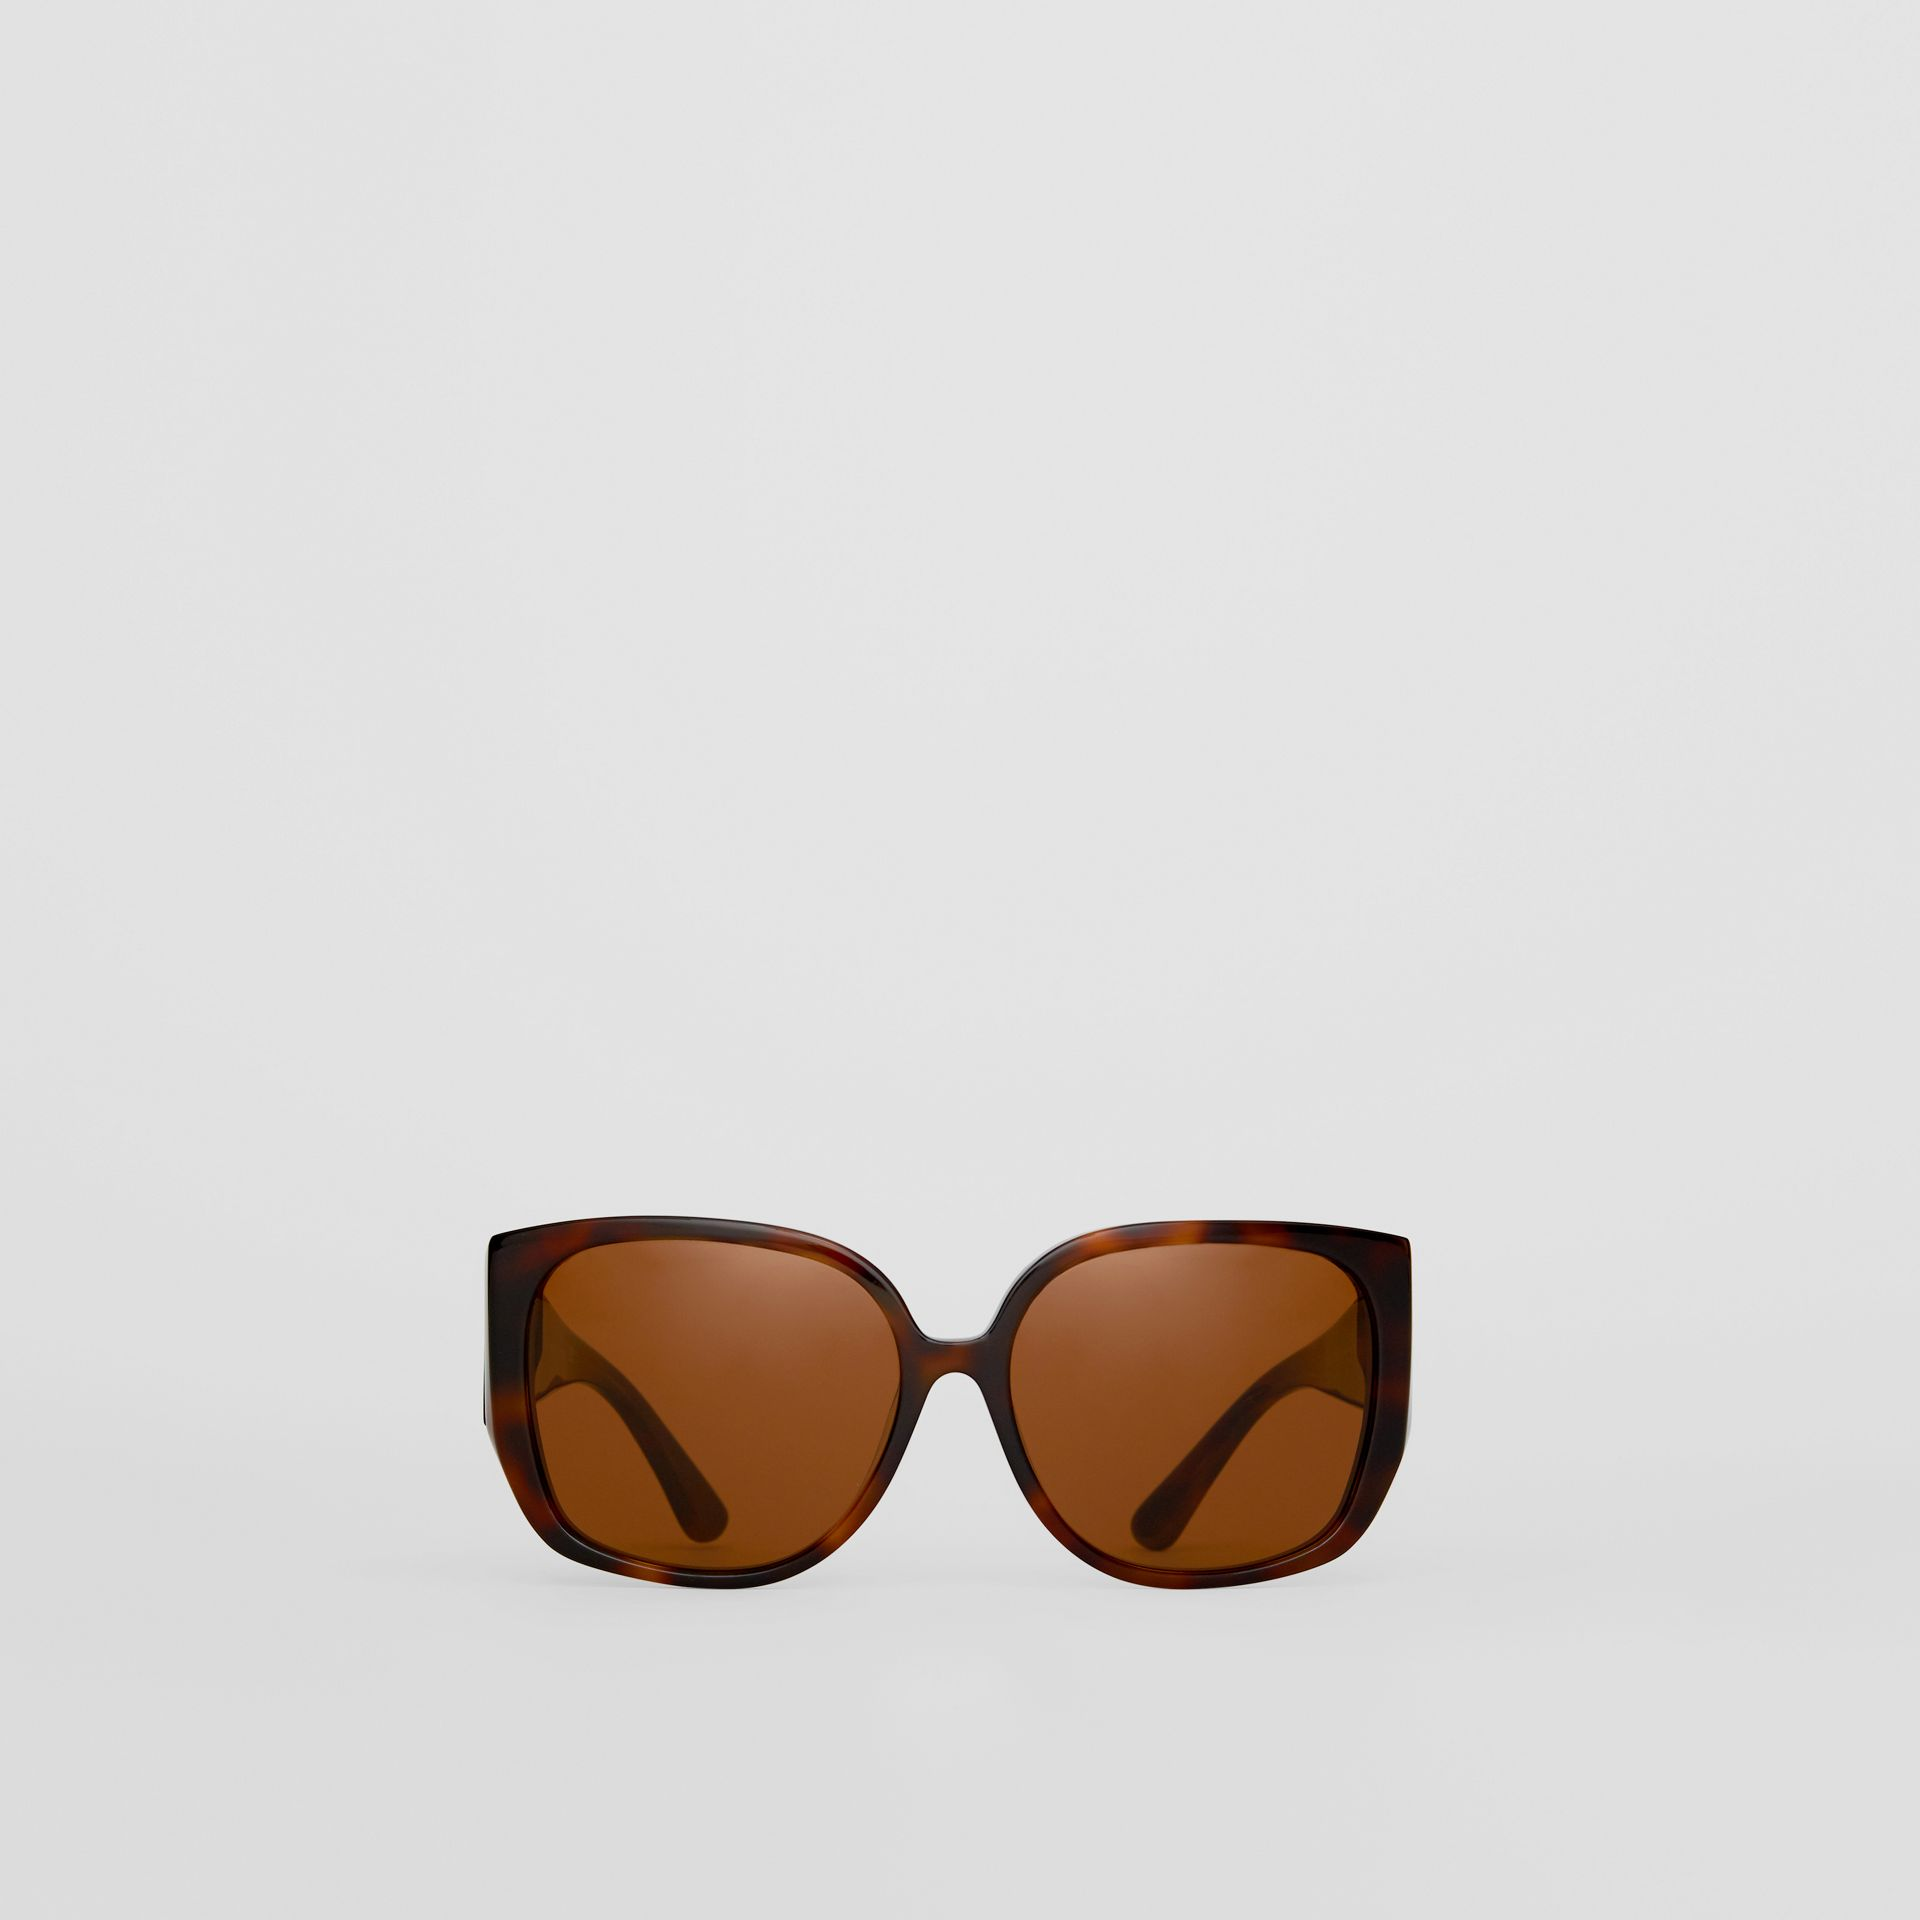 Oversized Butterfly Frame Sunglasses in Tortoiseshell - Women | Burberry Singapore - gallery image 0